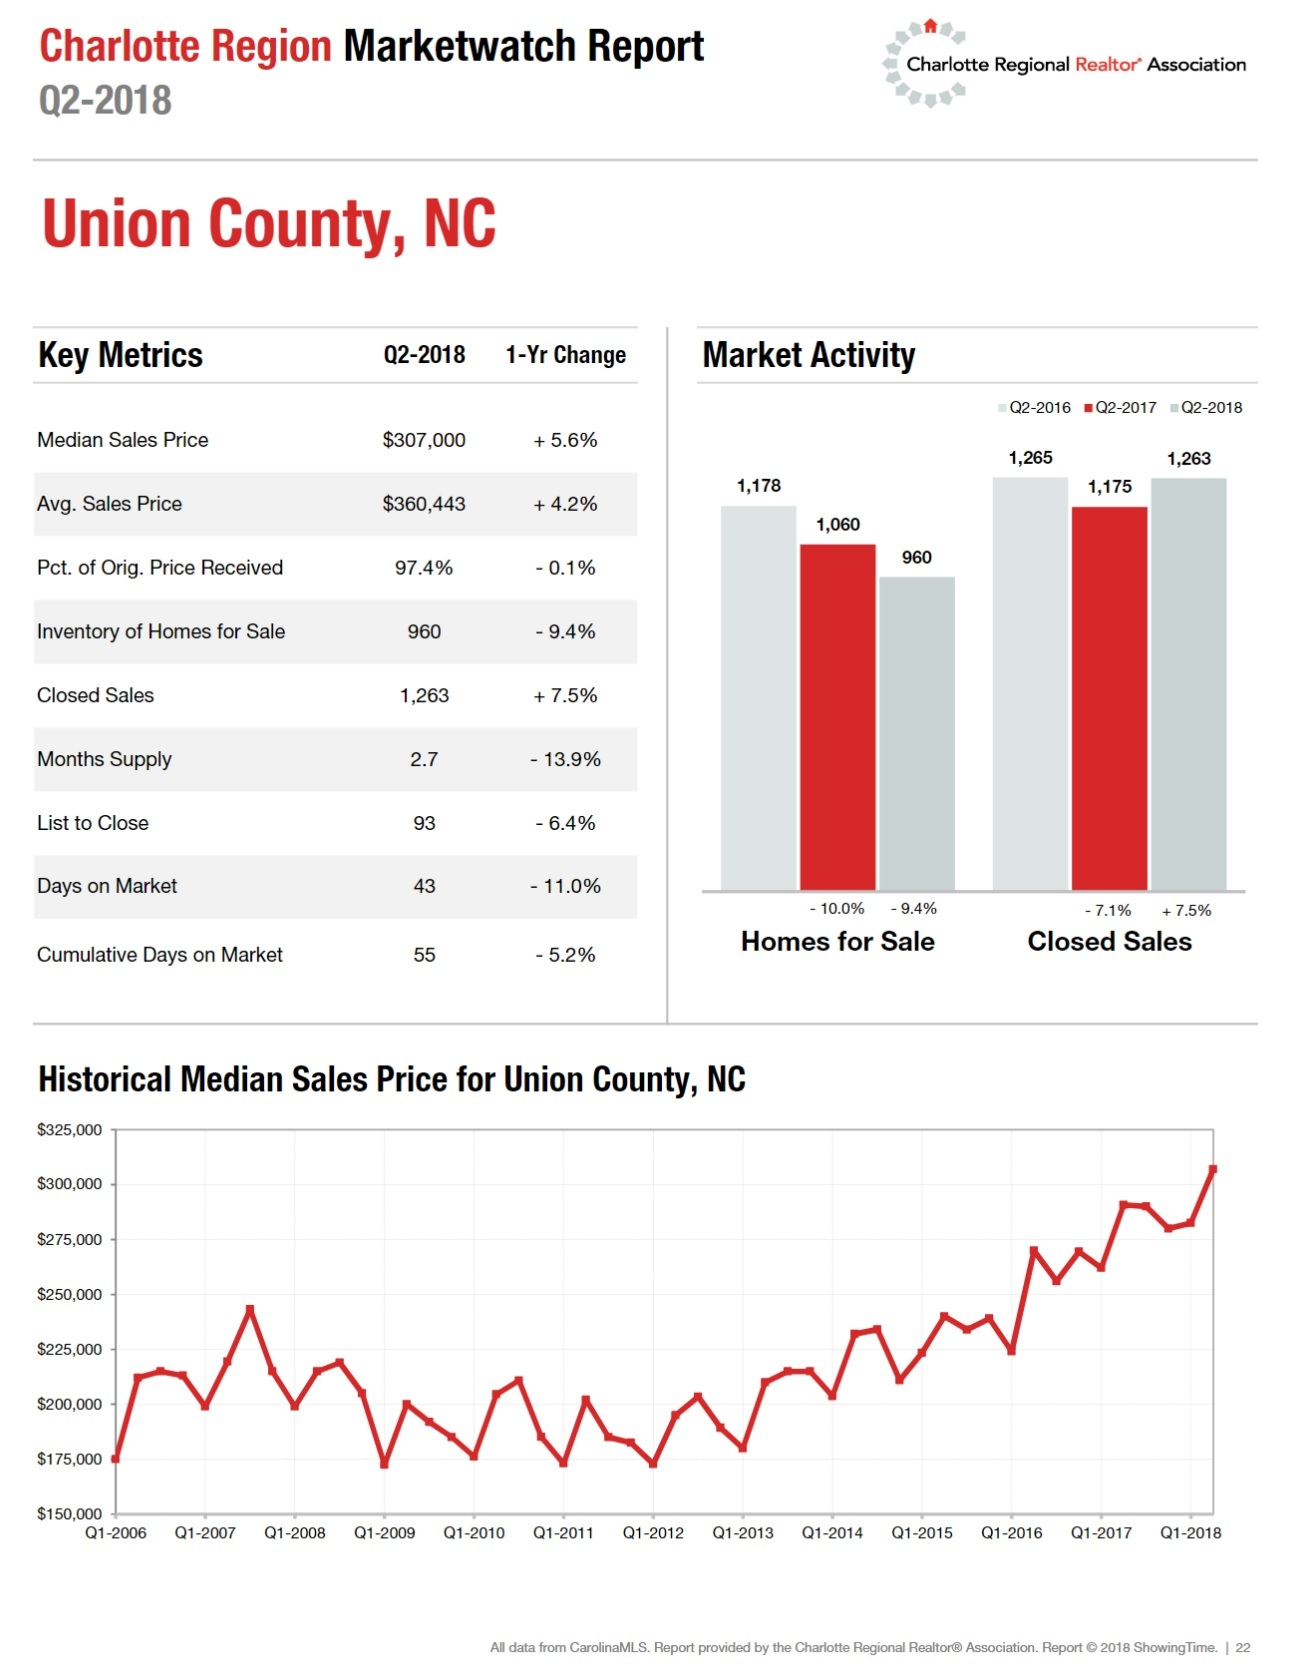 Union County, NC 2nd quarter 2018 housing data